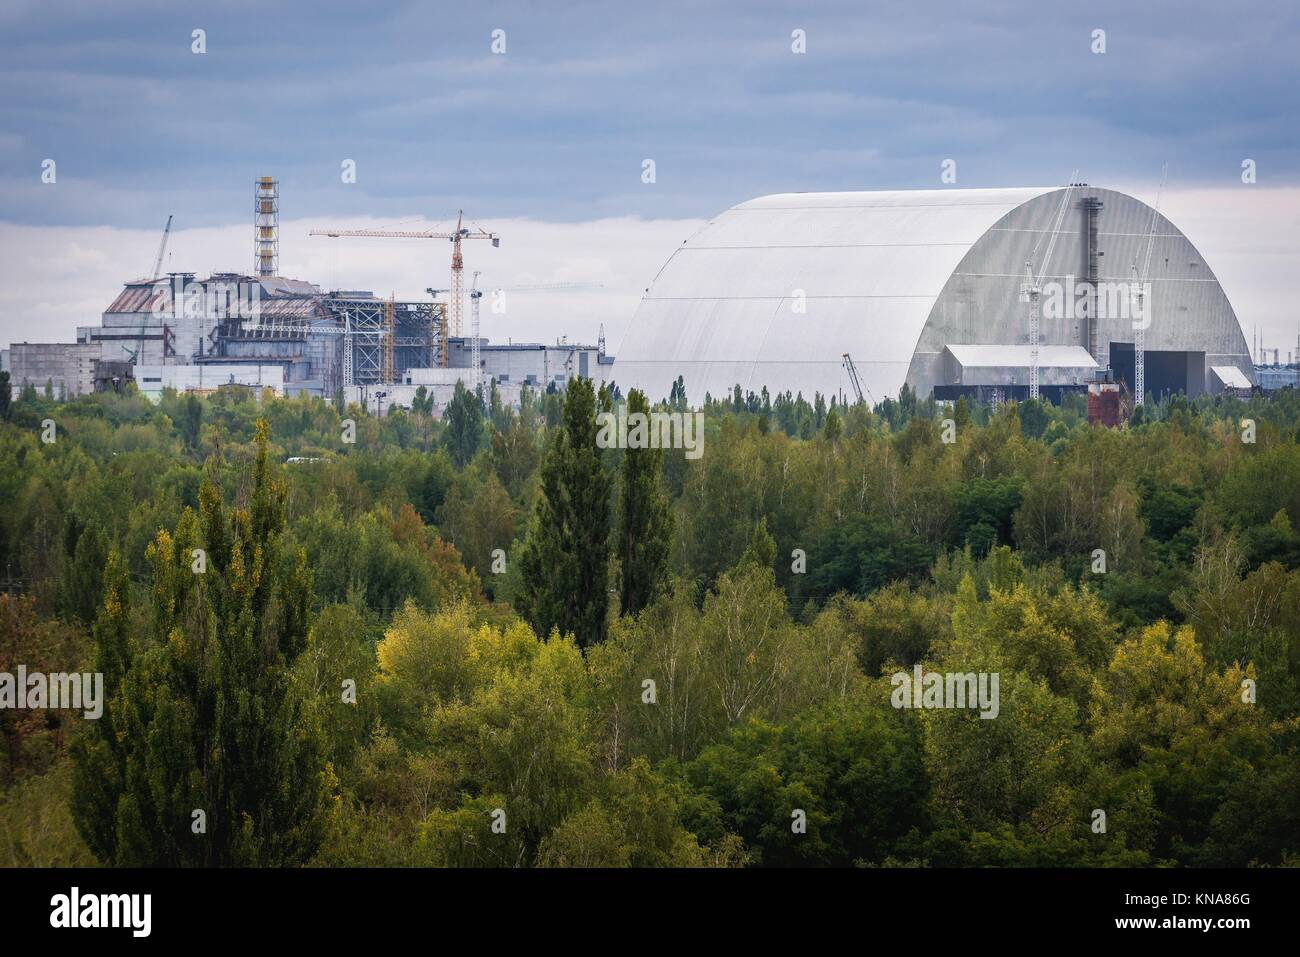 New Safe Confinement of Chernobyl Nuclear Power Plant in Zone of Alienation around the nuclear reactor disaster - Stock Image